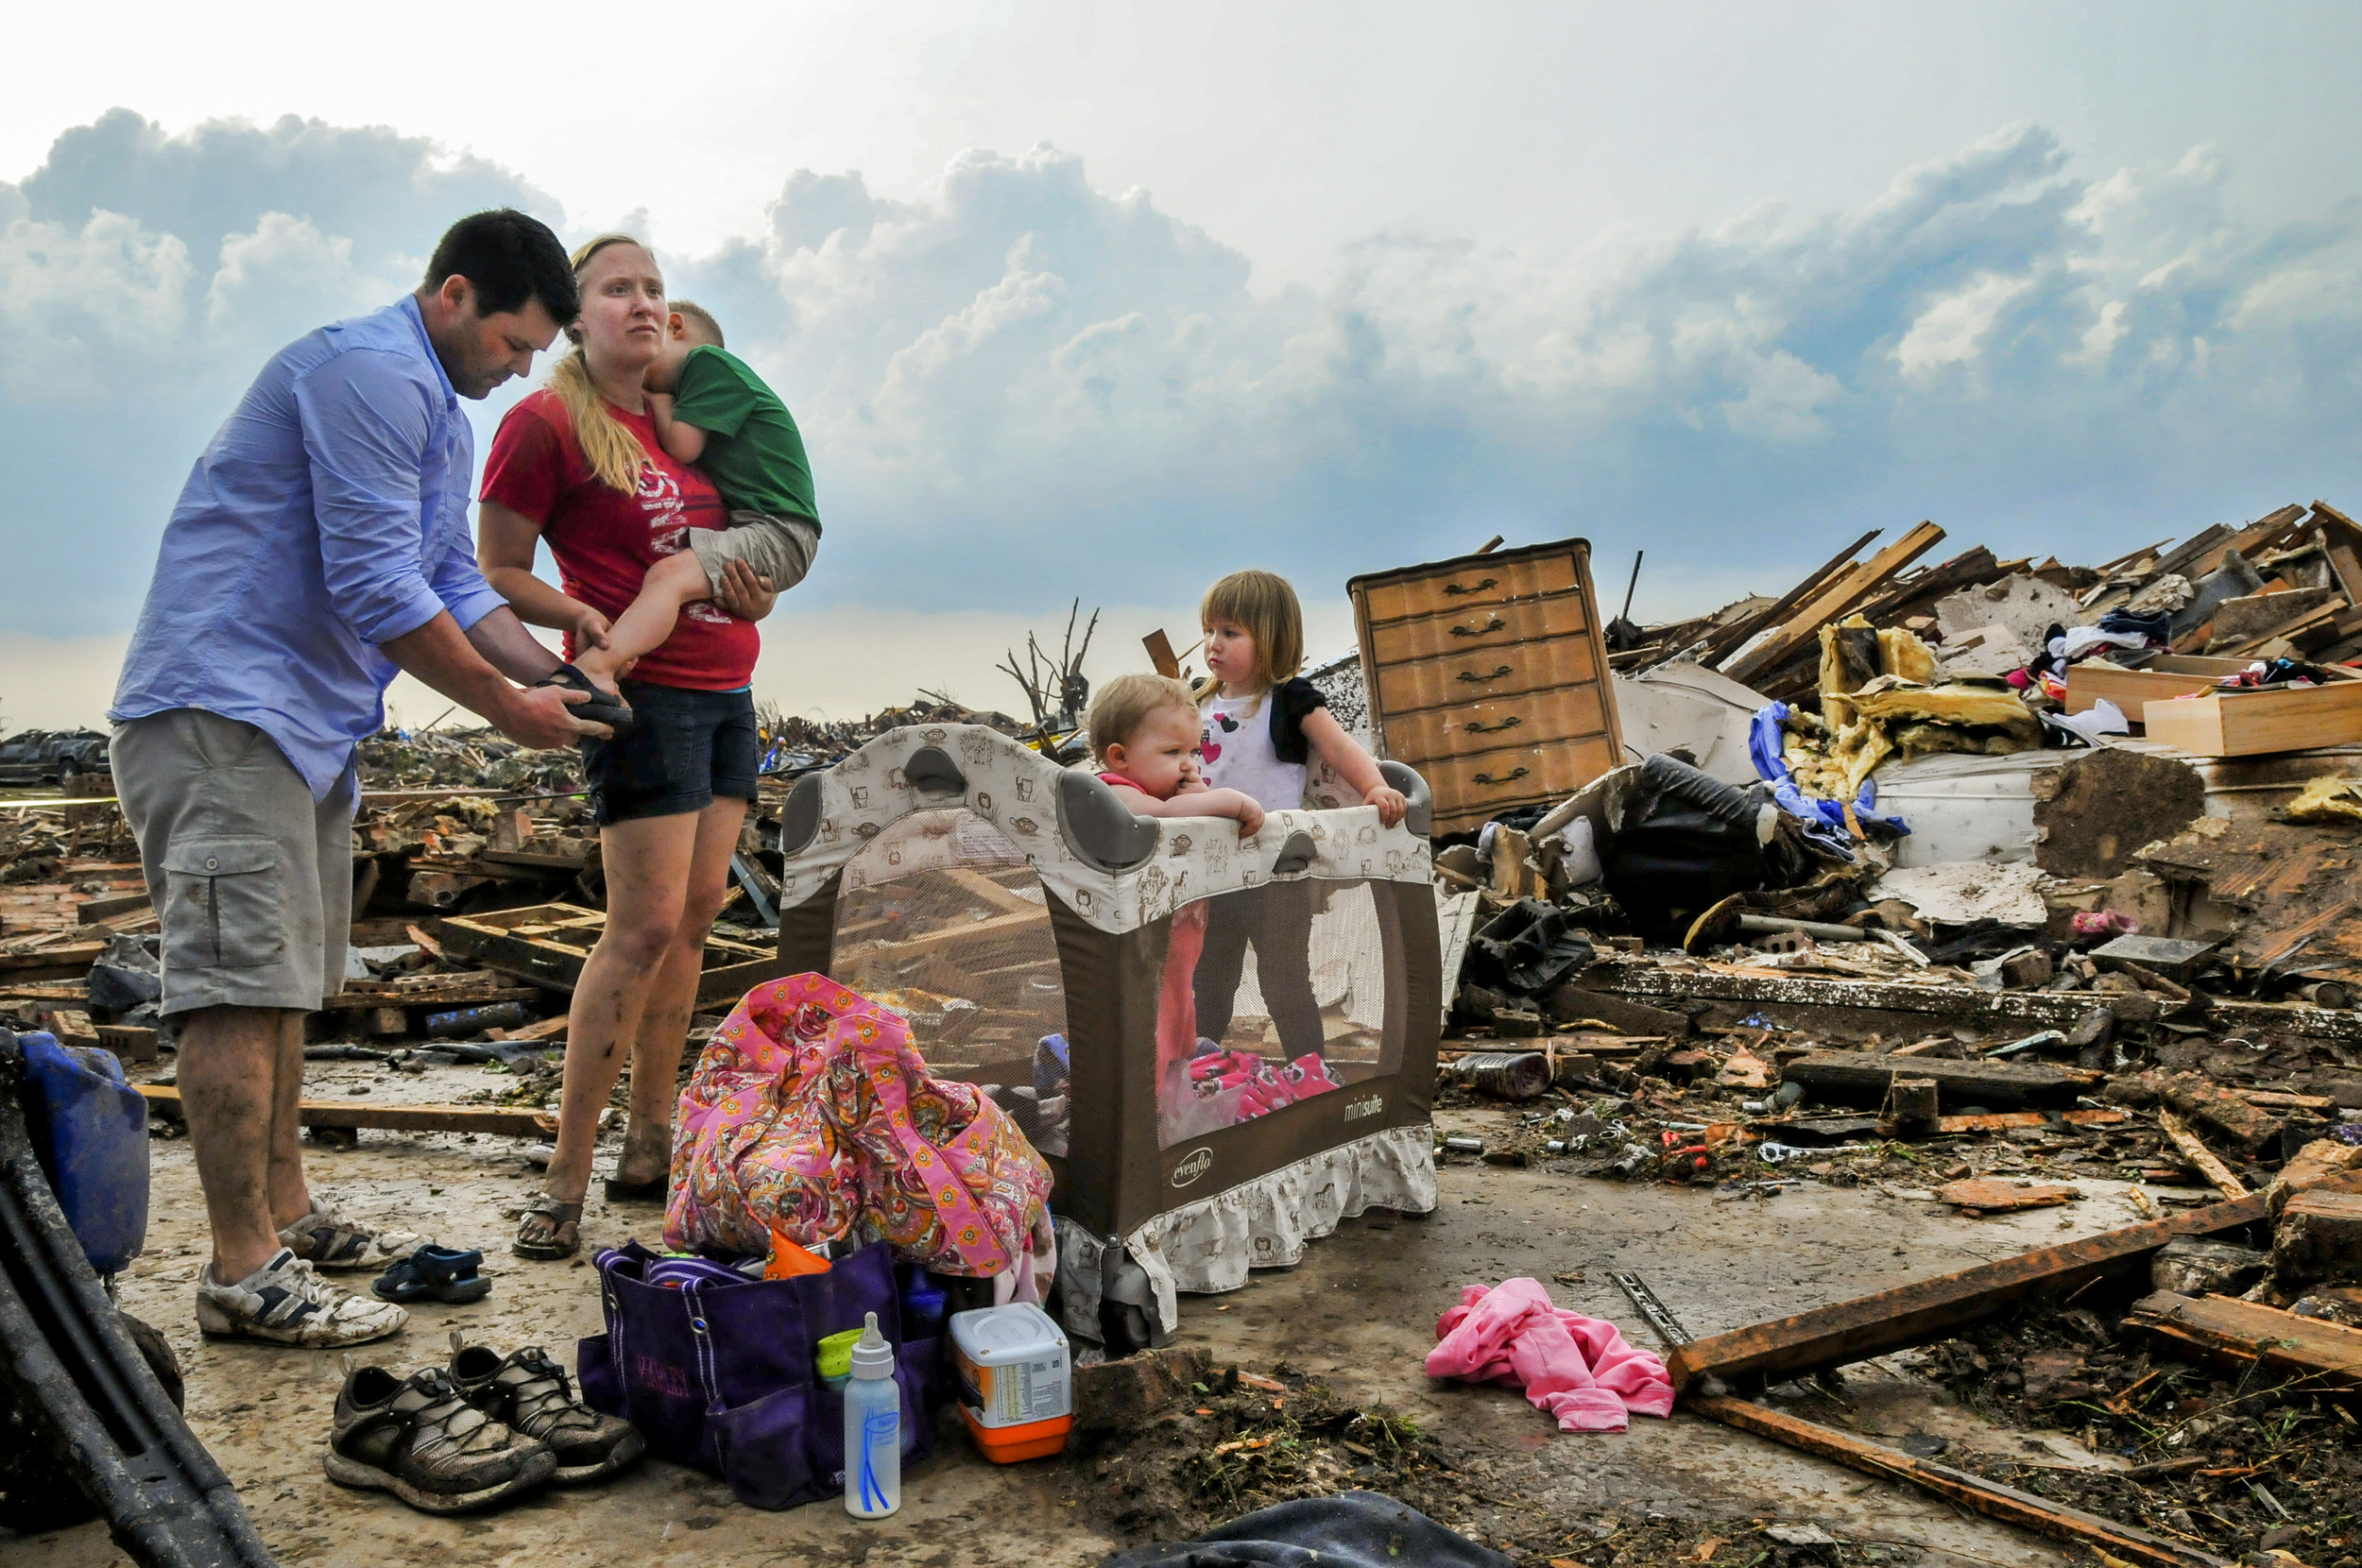 Kelcy Trowbridge, her brother in Law Dustin Weher and her three children L to R: Colby Trowbridge 4, Karley Trowbridge, 1, and Kynlee Trowbridge in front of their destroyed home on May, 20 in the Westmoor Neighborhood near Moore Oklahoma